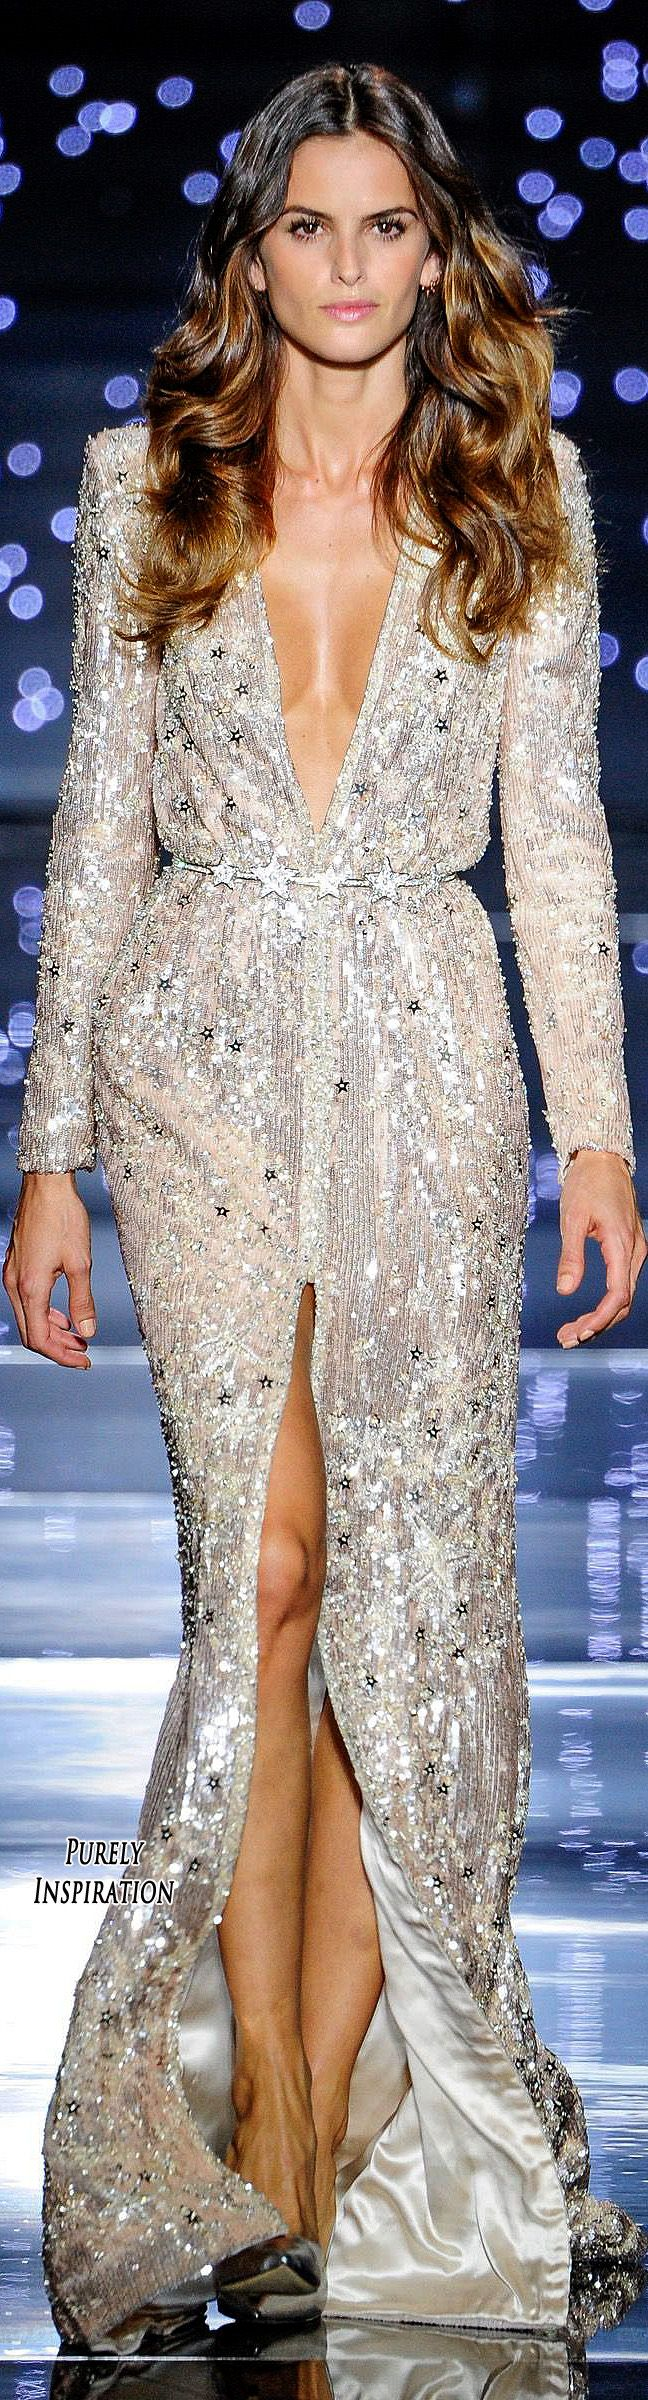 Zuhair Murad Fall 2015 Haute Couture | Purely Inspiration